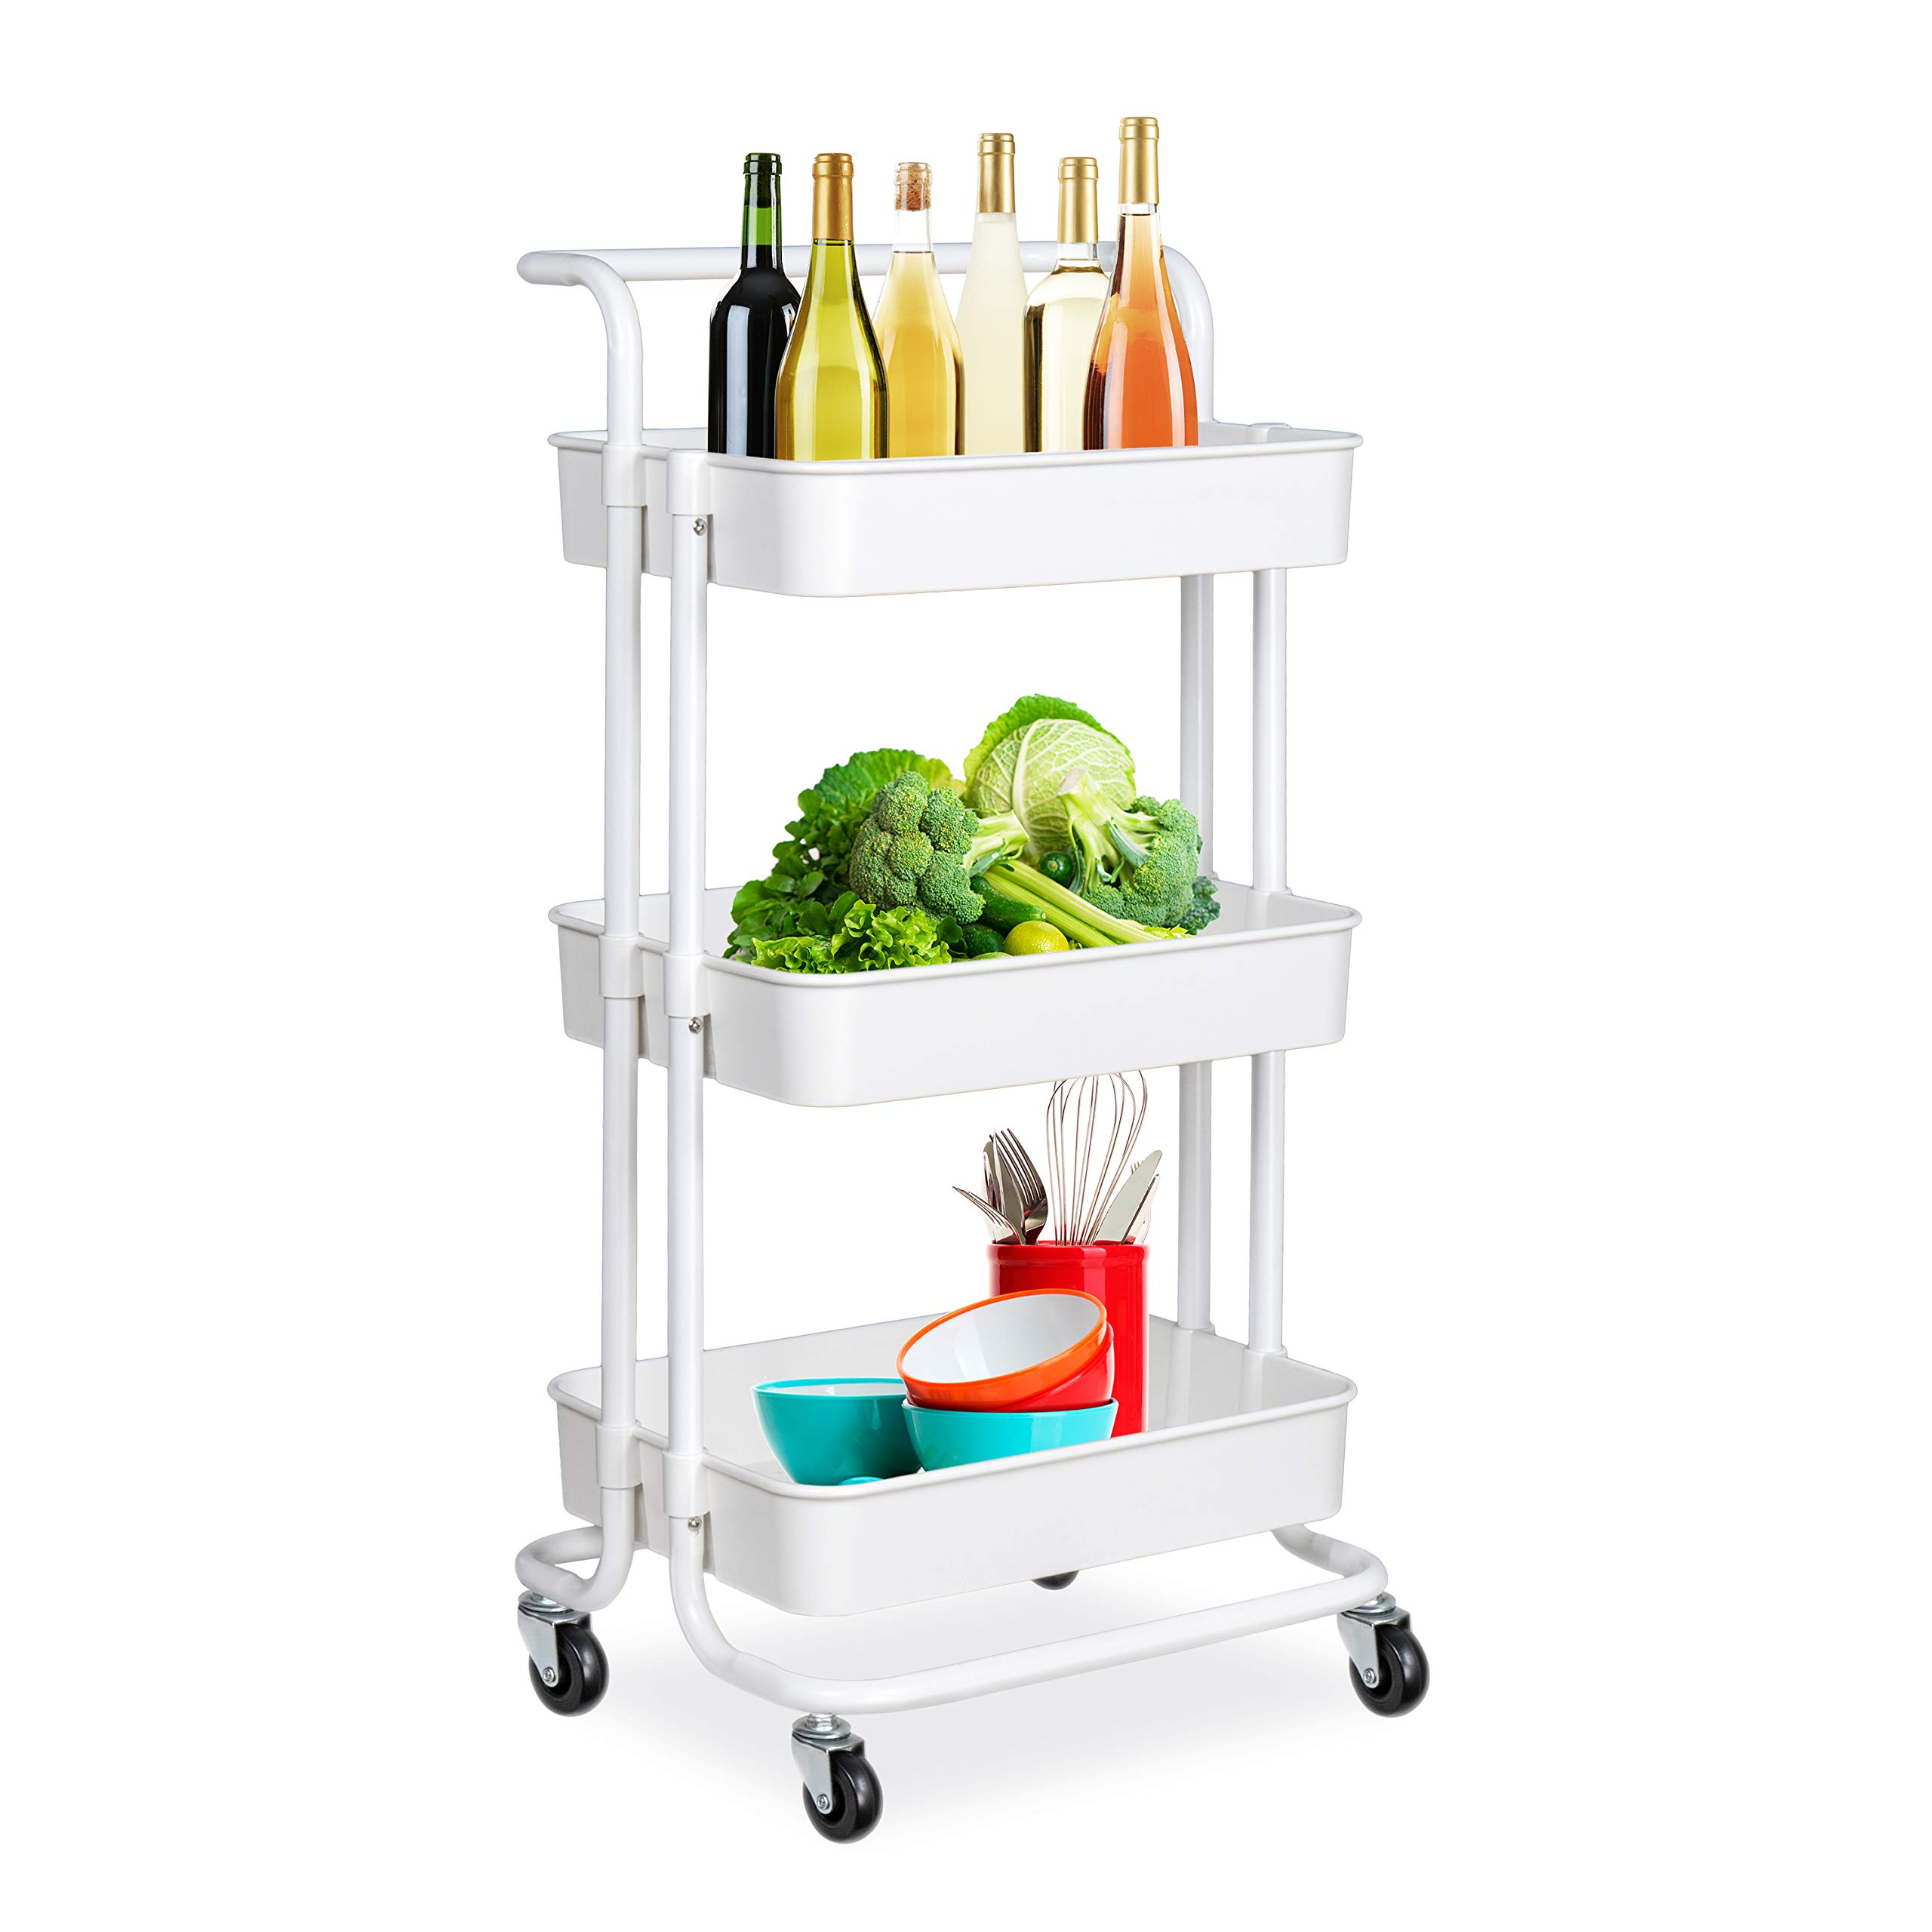 alvorog 3-Tier Rolling Utility Cart Storage Shelves Multifunction Storage Trolley Service Cart with Mesh Basket Handles and Wheels Easy Assembly for Bathroom, Kitchen, Office (White) by alvorog